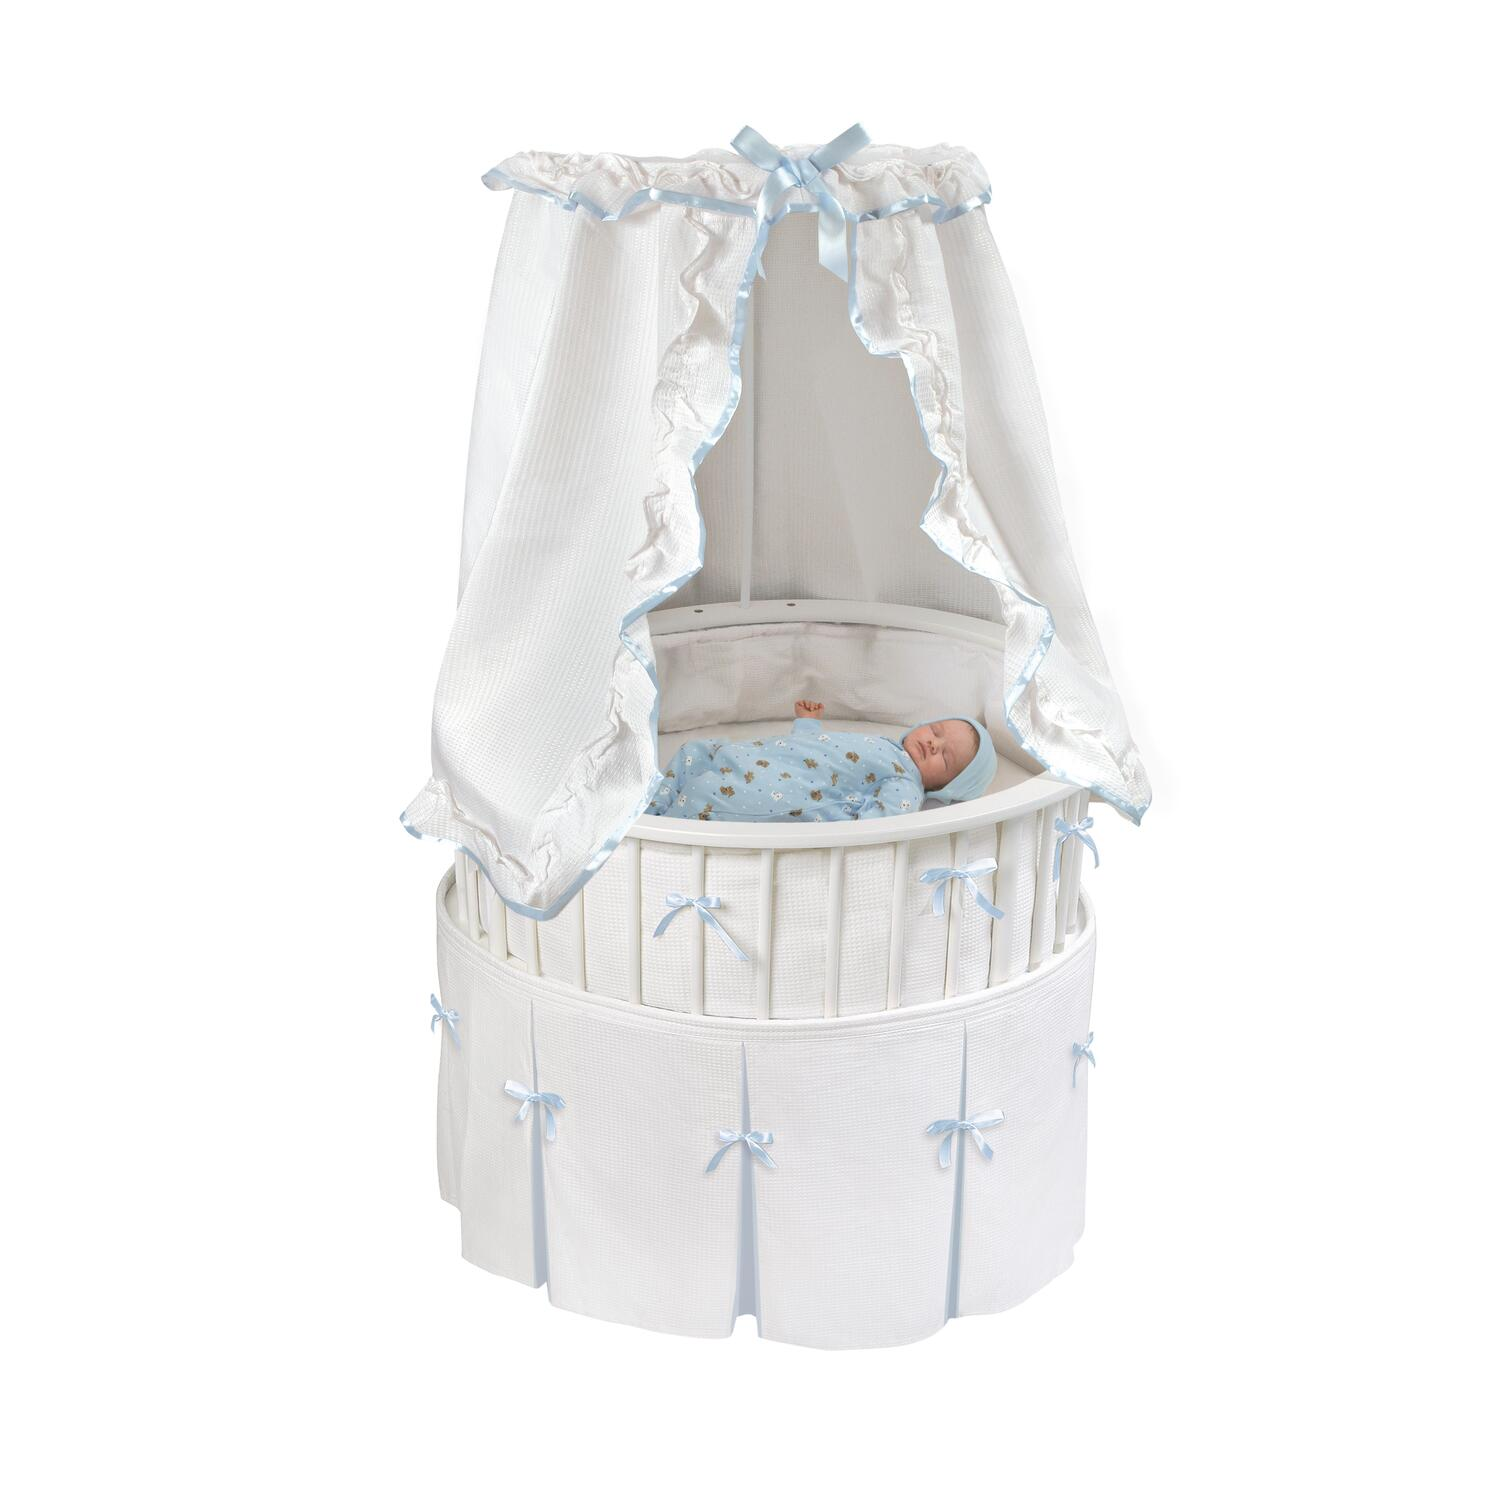 Baby Basket Bassinet Elite Oval Baby Bassinet From 157 89 To 159 08